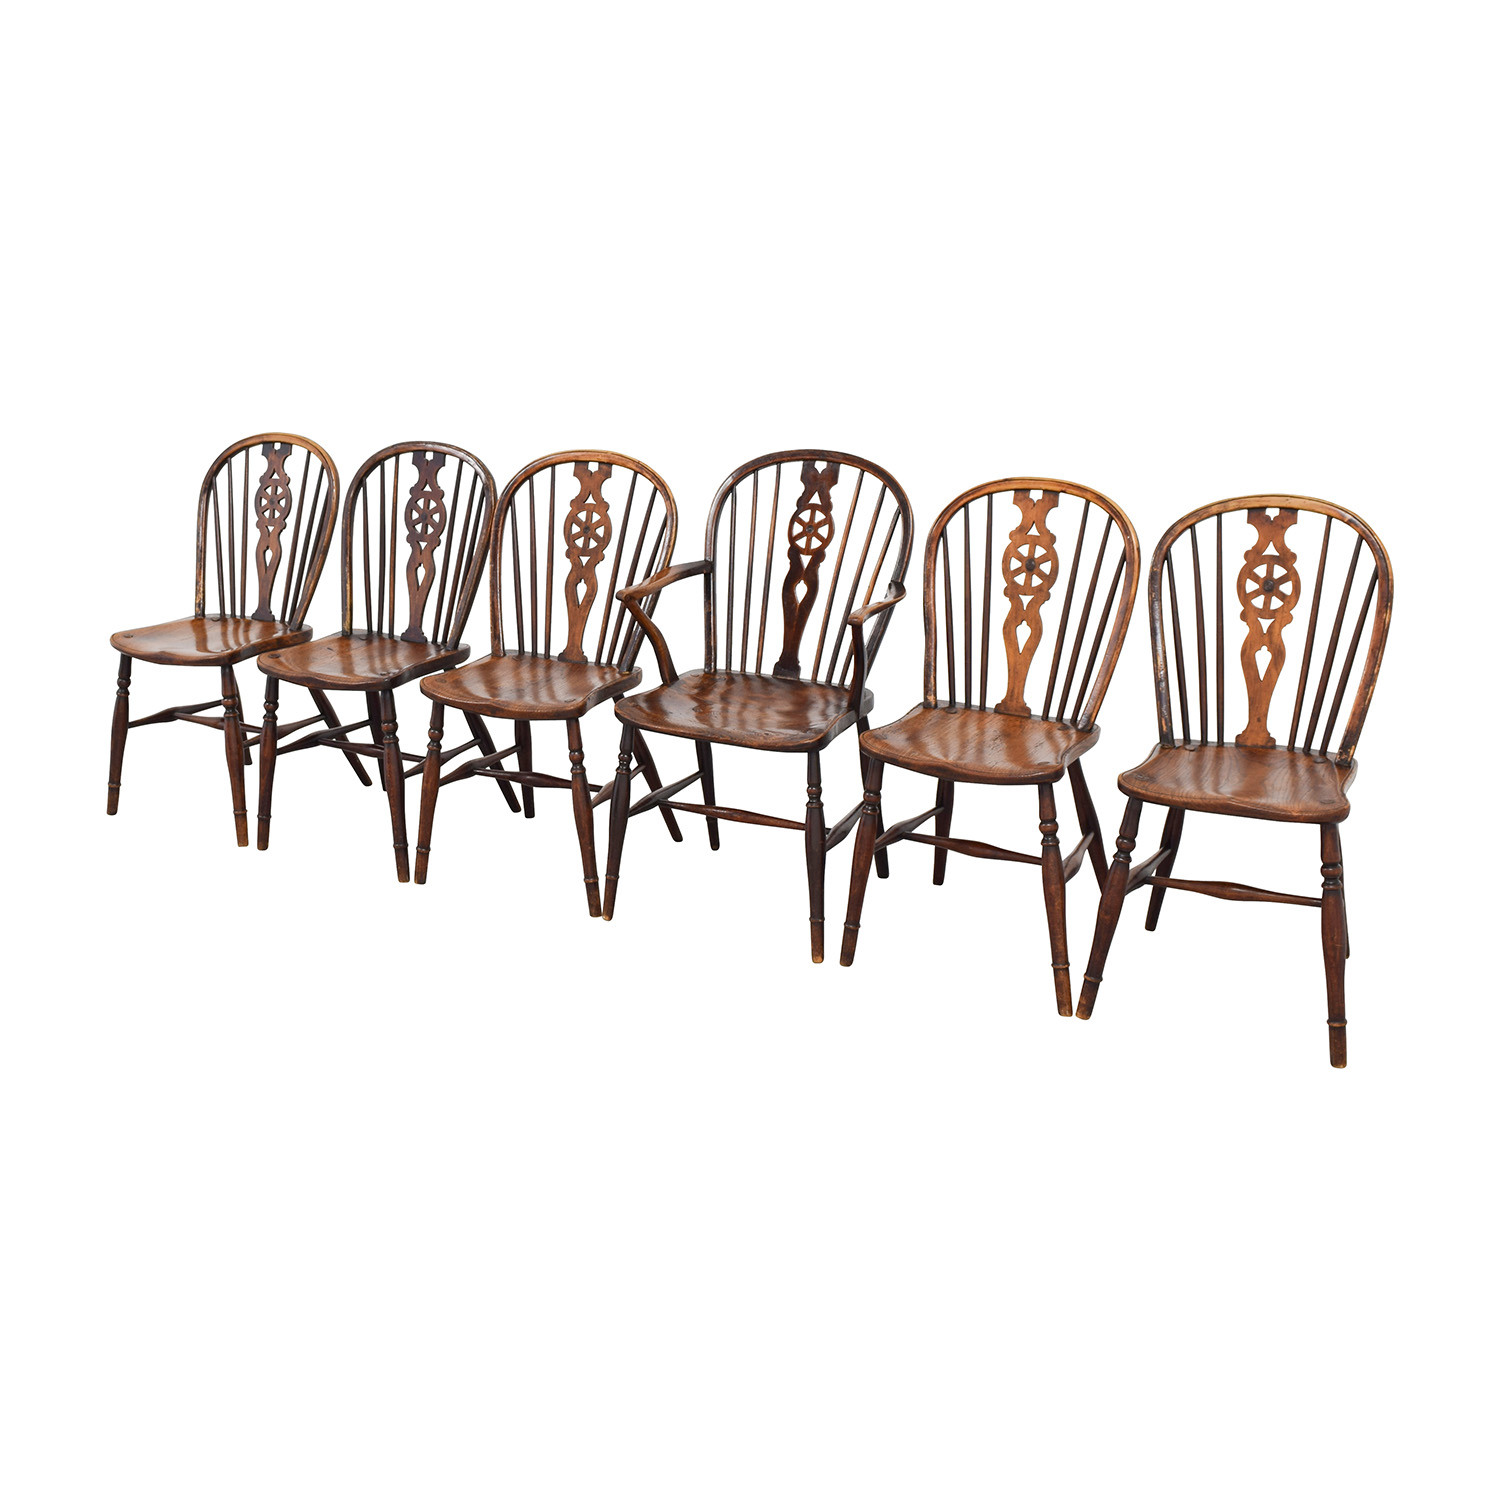 buy Tim Wharton Antiques Tim Wharton Antiques Georgian Windsor Chairs online